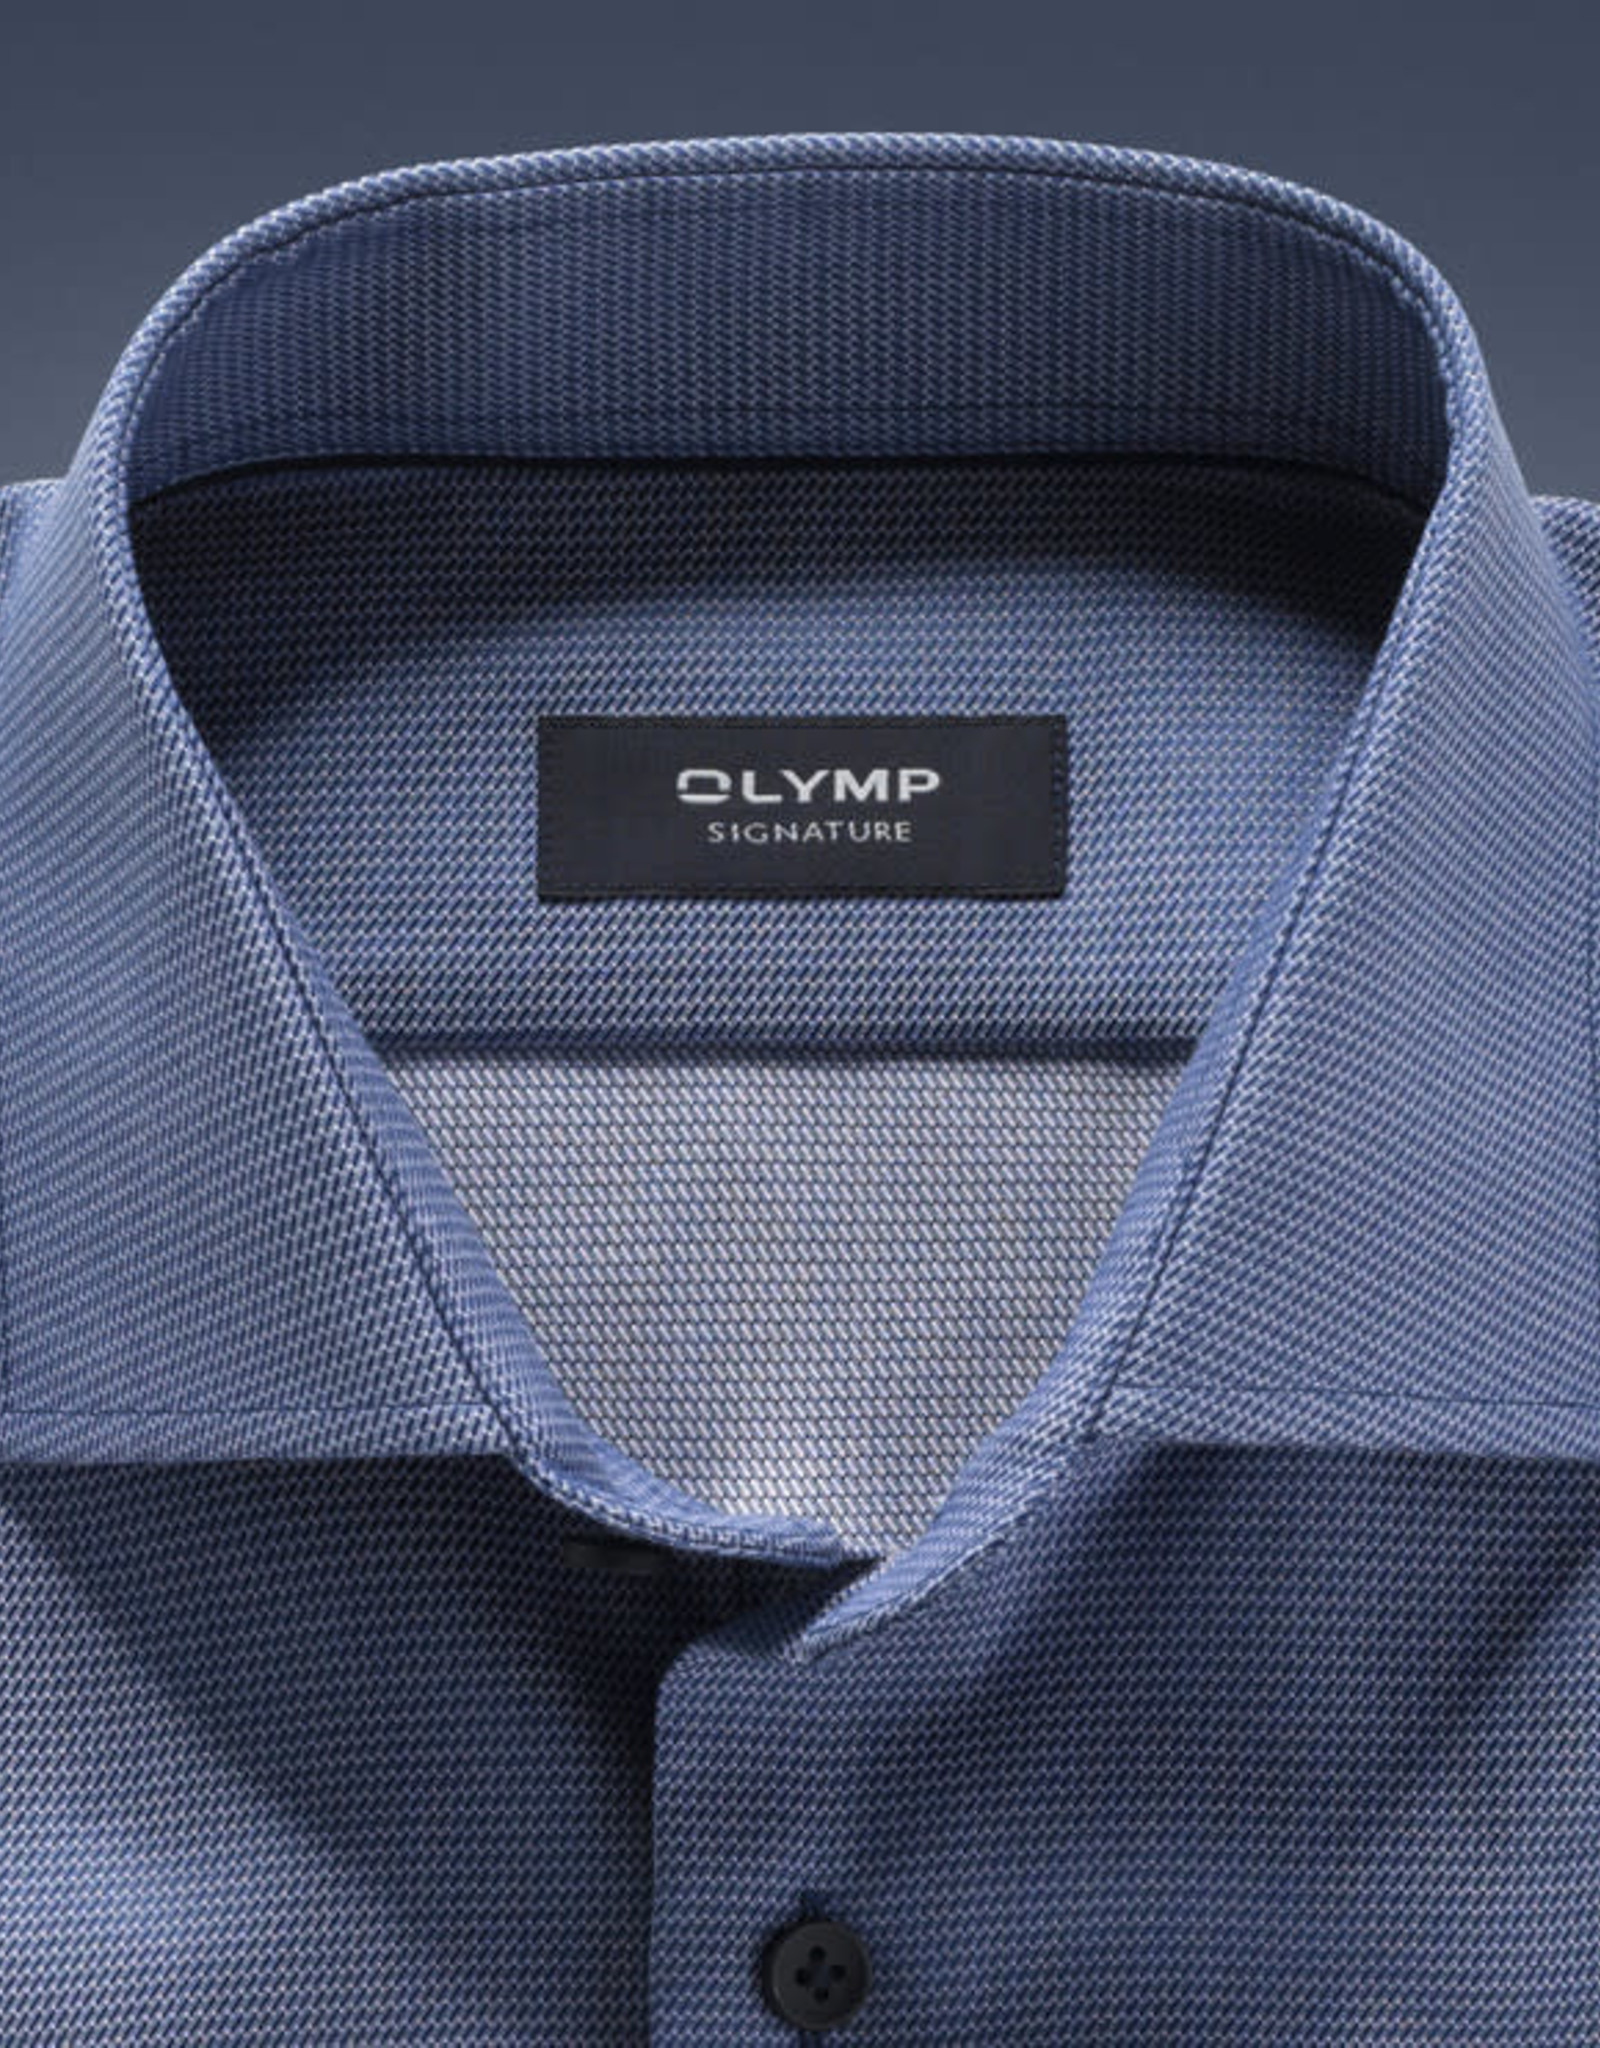 Olymp Signature tailored fit overhemd rookblauw